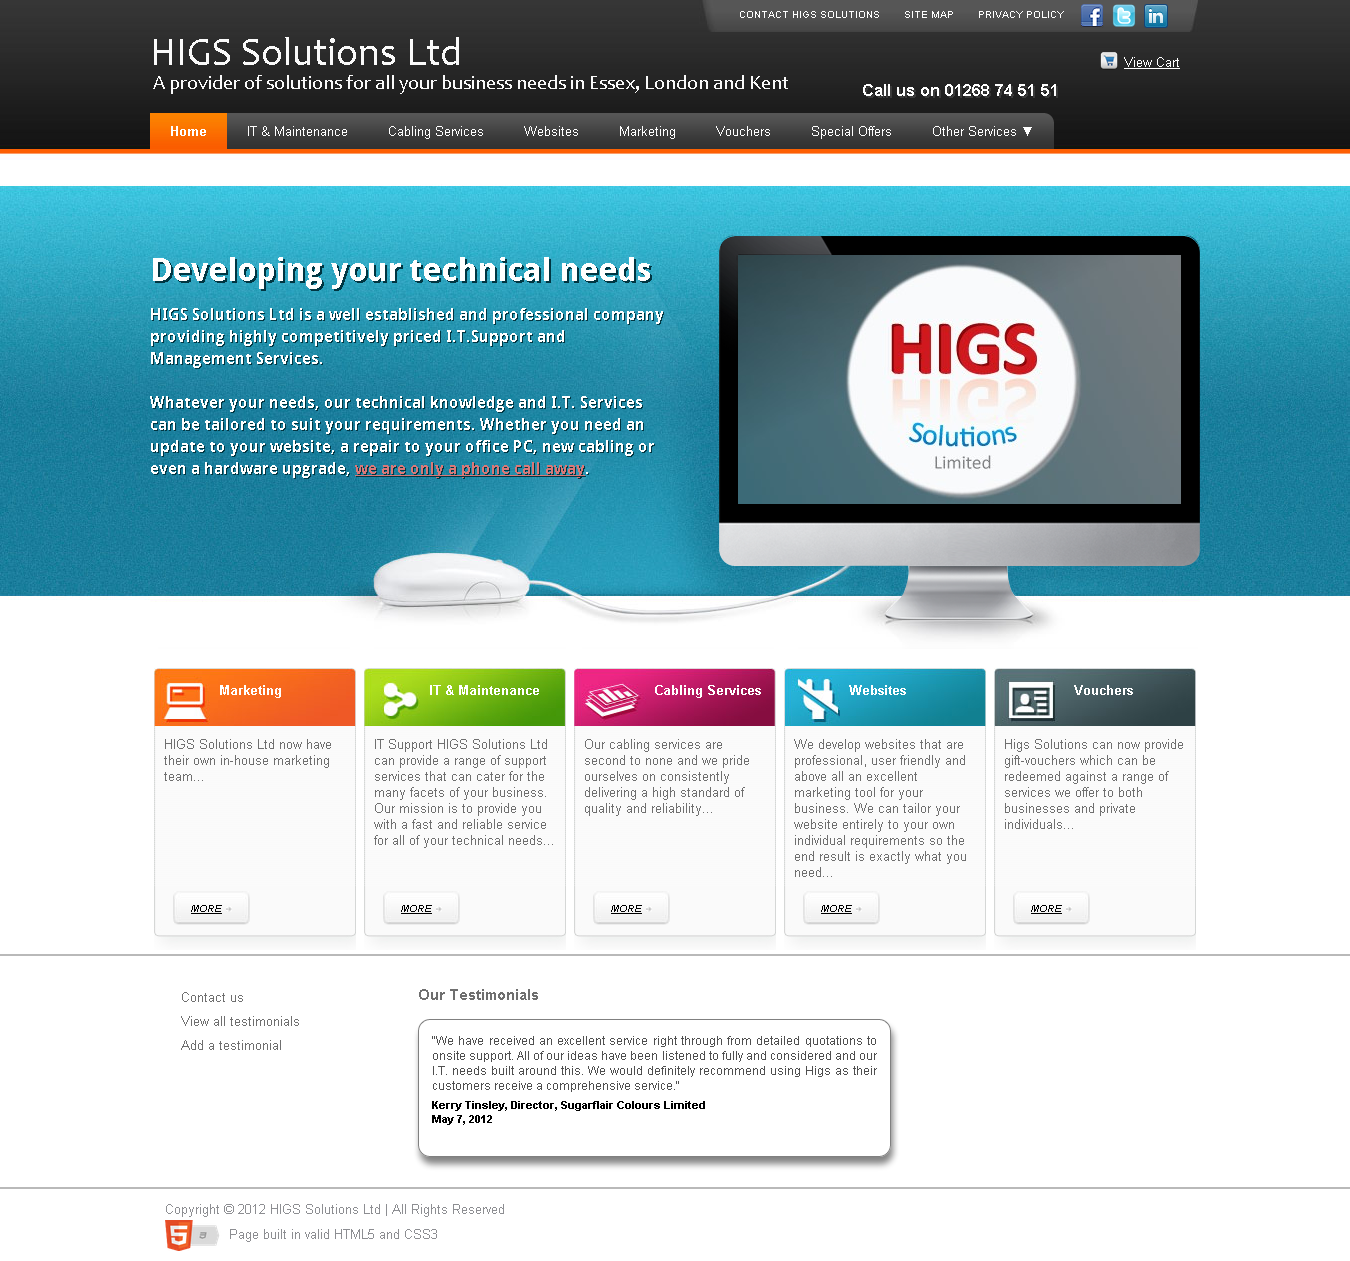 Check Out This Website Which Is Not Only Dynamic But Also A Joomla Based Site Designed By E Intellisense Higs Solutions Web Design Site Design Dynamic Design